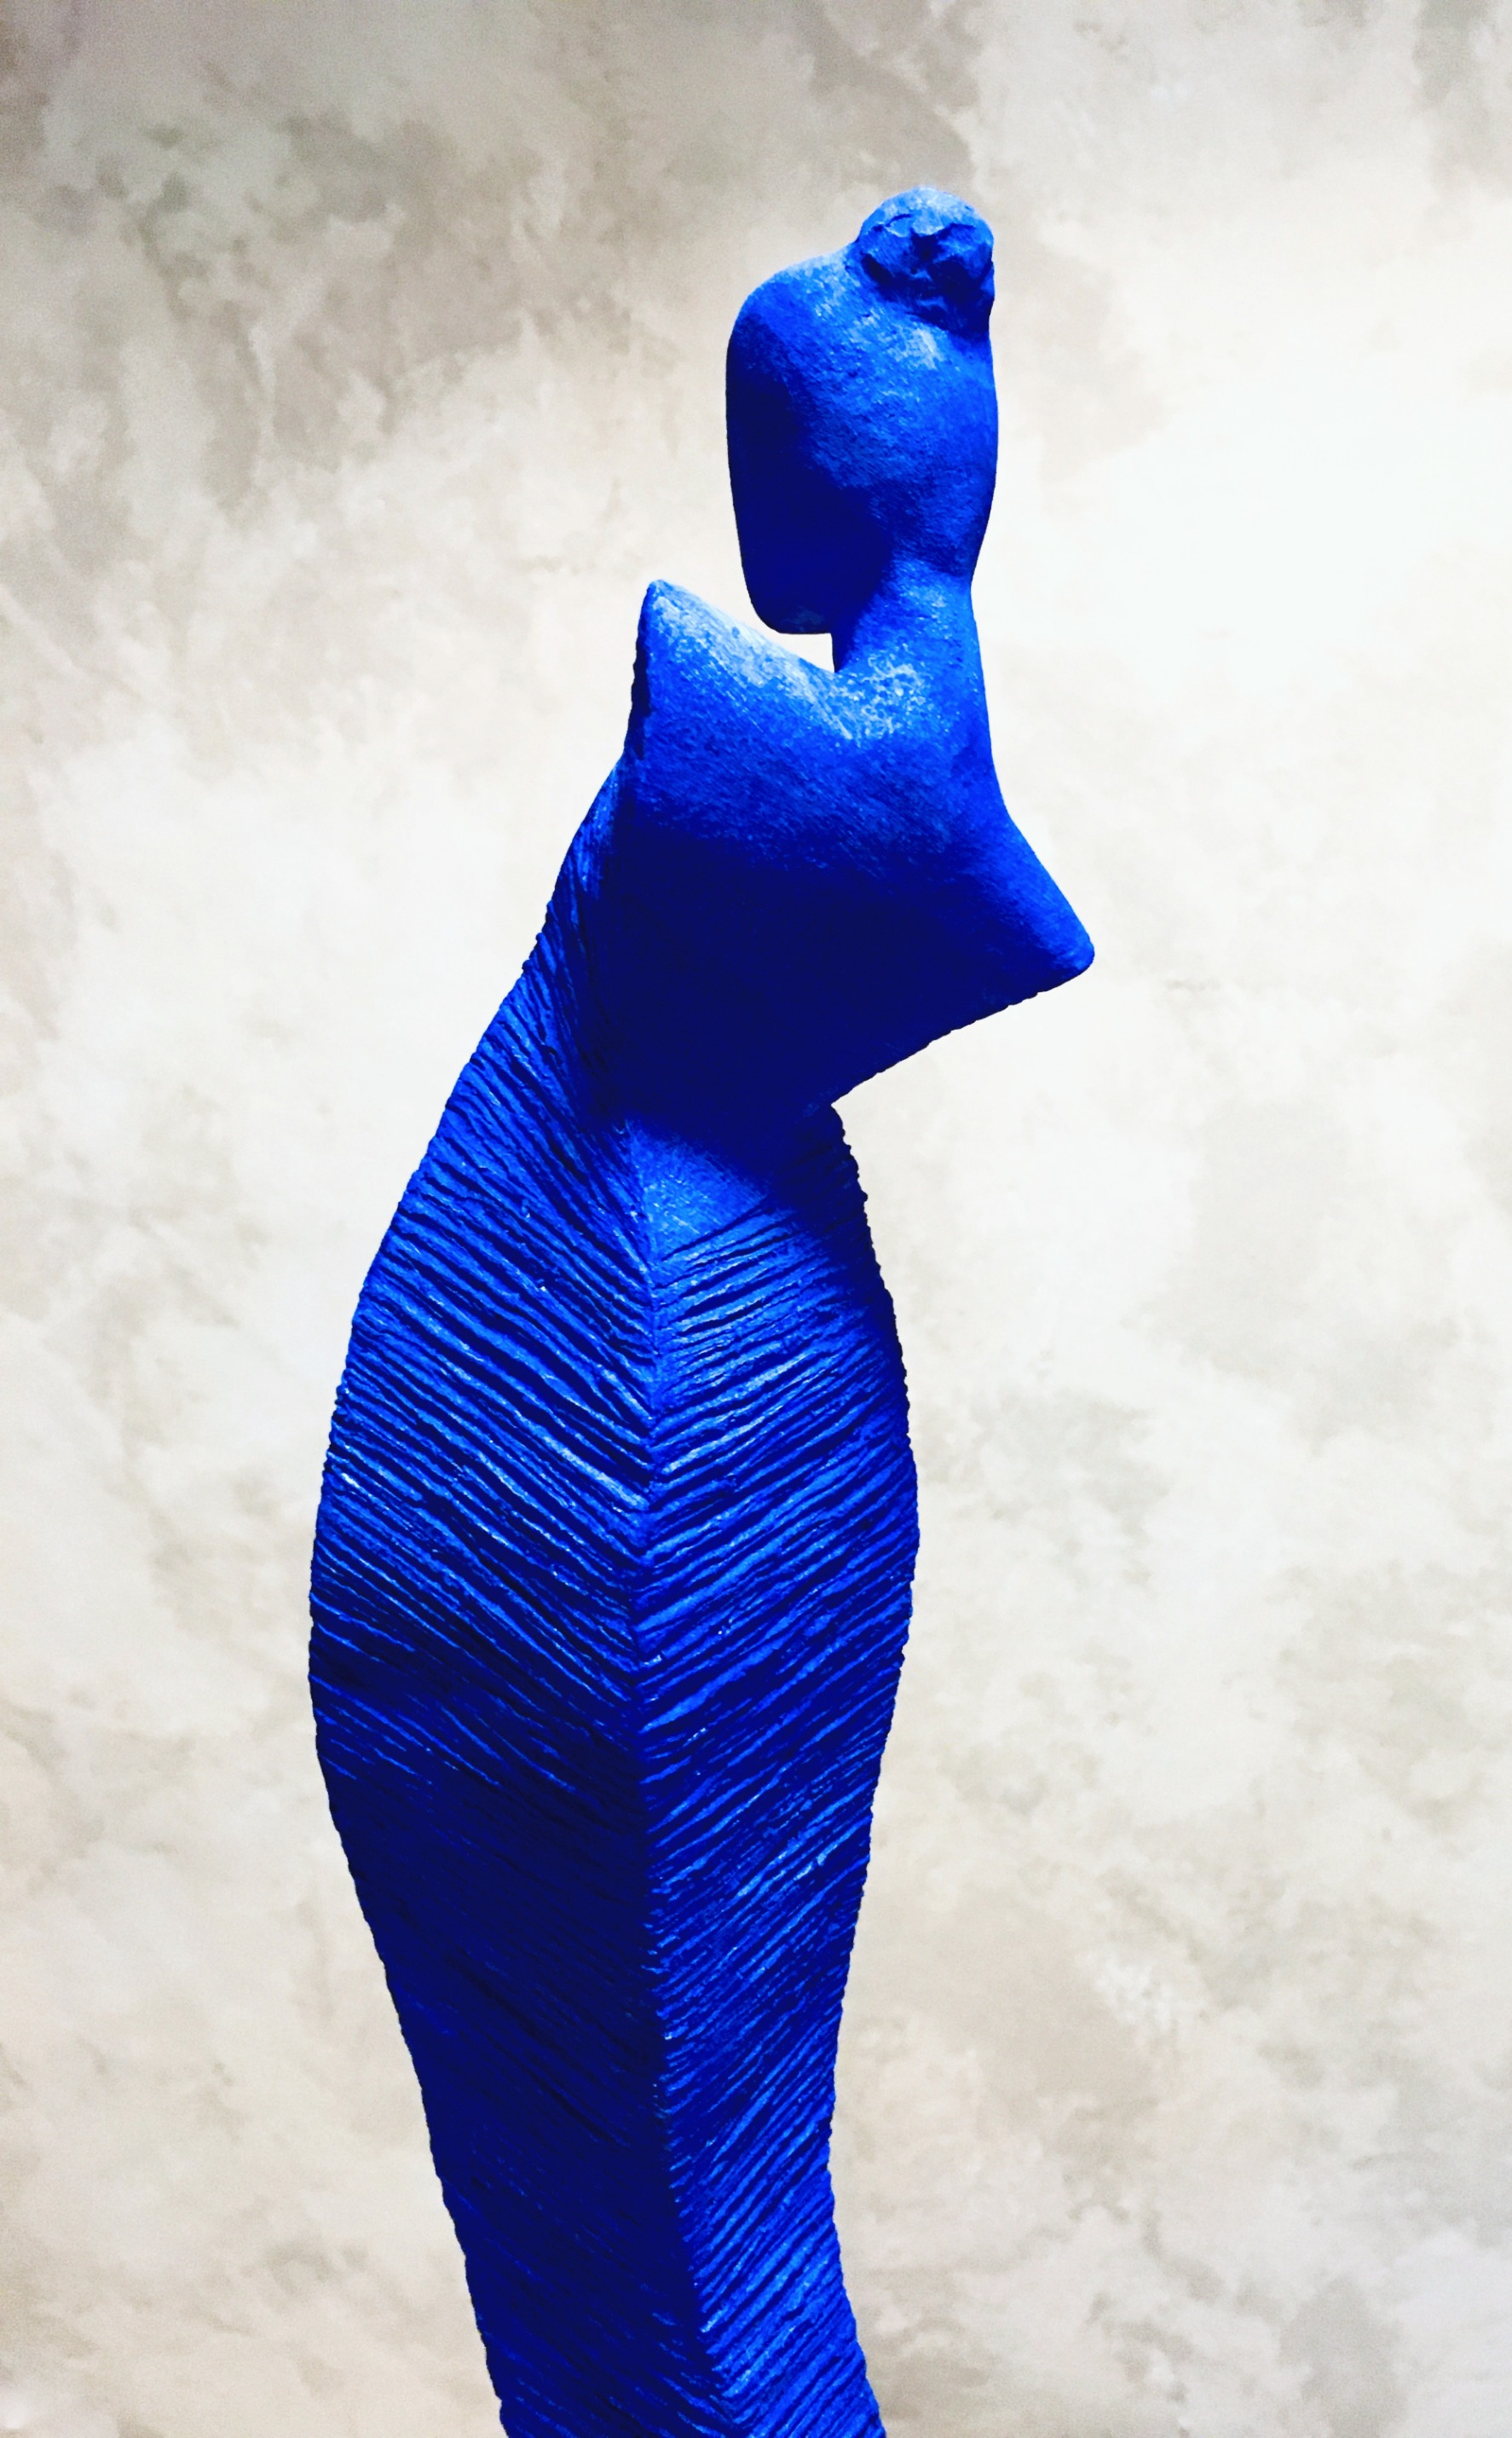 ULTRAMARINE, patinated terracotta